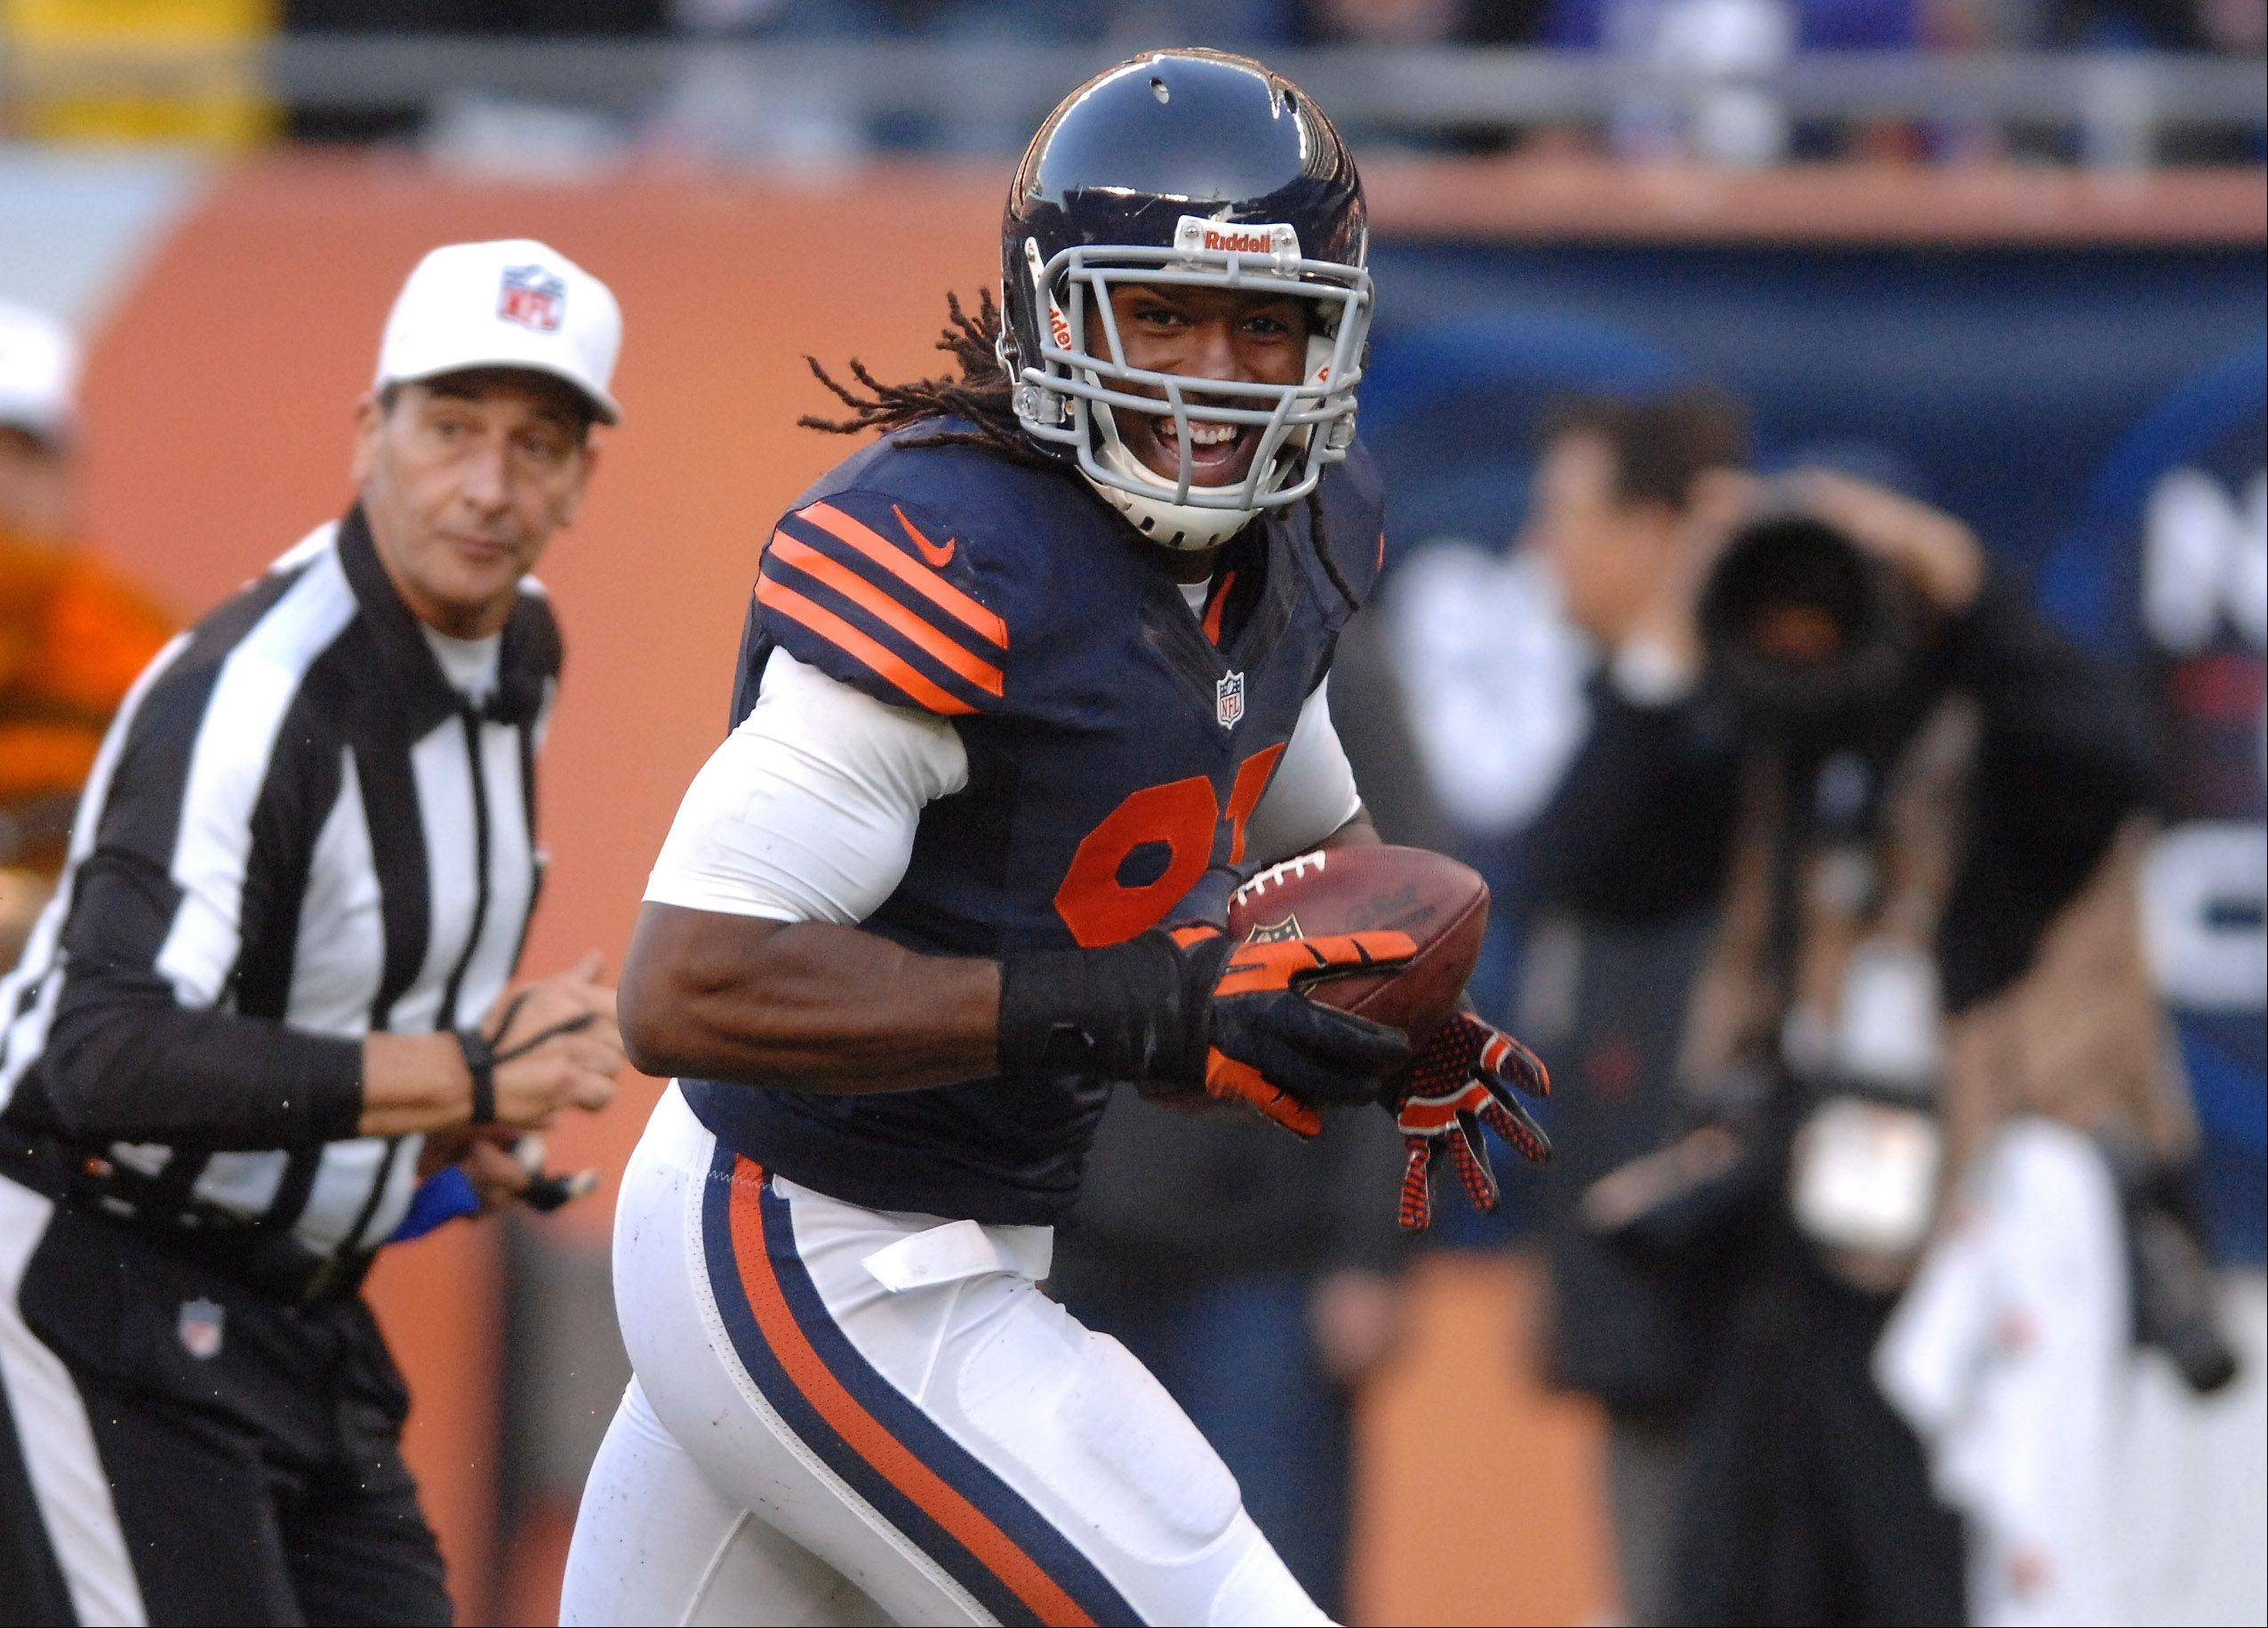 Bears defensive end David Bass smiles as he runs untouched into the end zone on his 24-yard interception return Sunday.